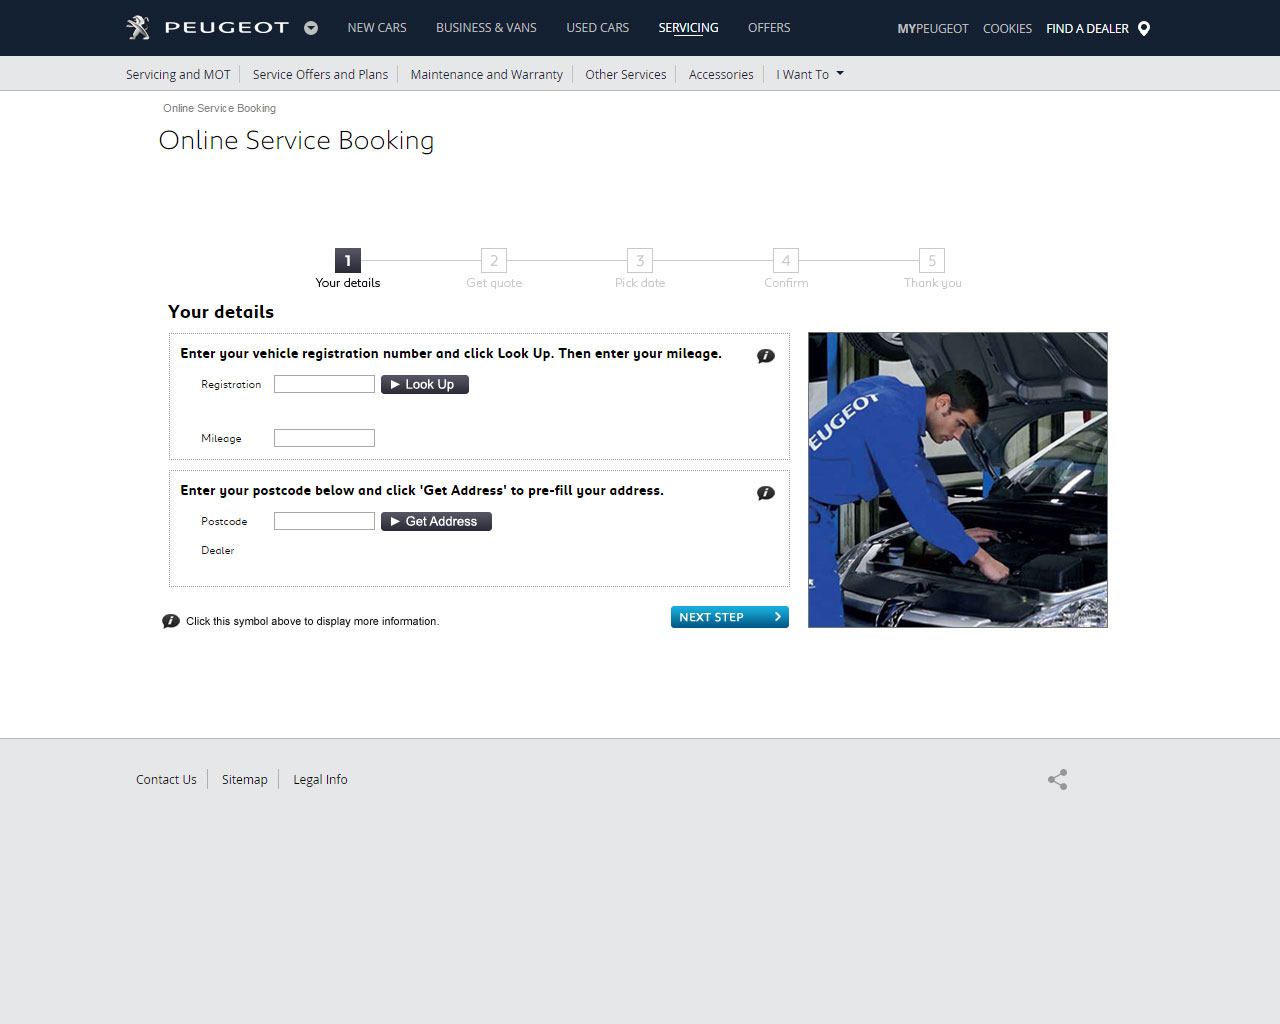 Peugeot Online Service Booking